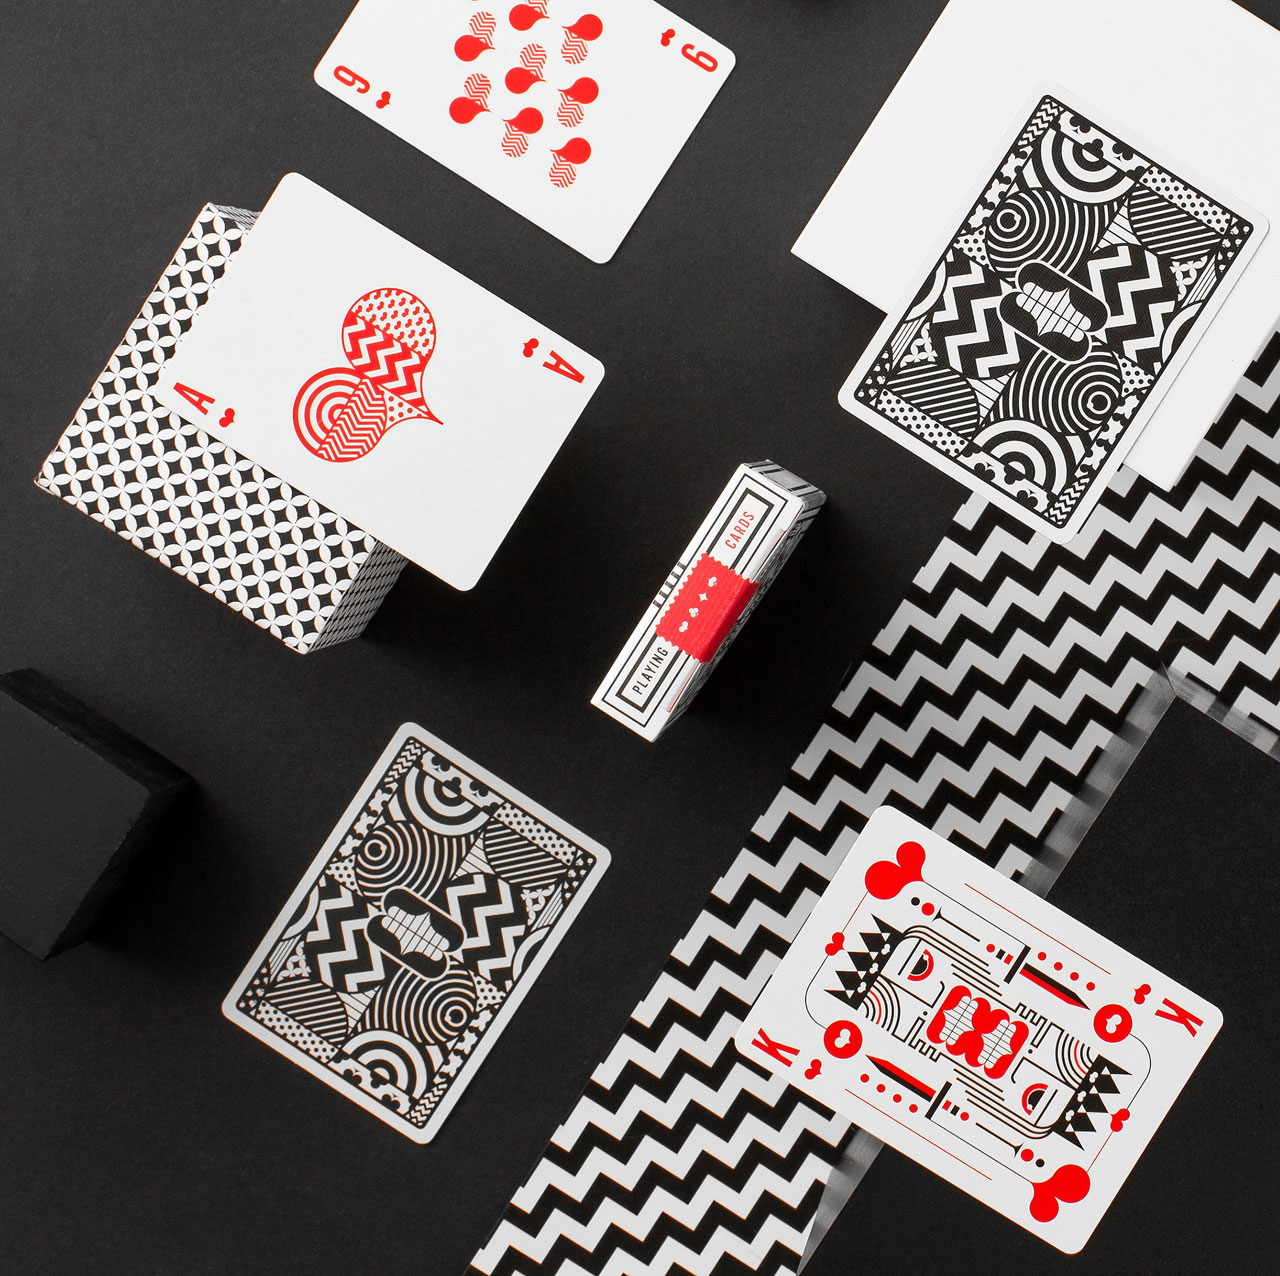 A rather crazy deck of playing cards designed by TRÜF in collaboration with Art of Play.